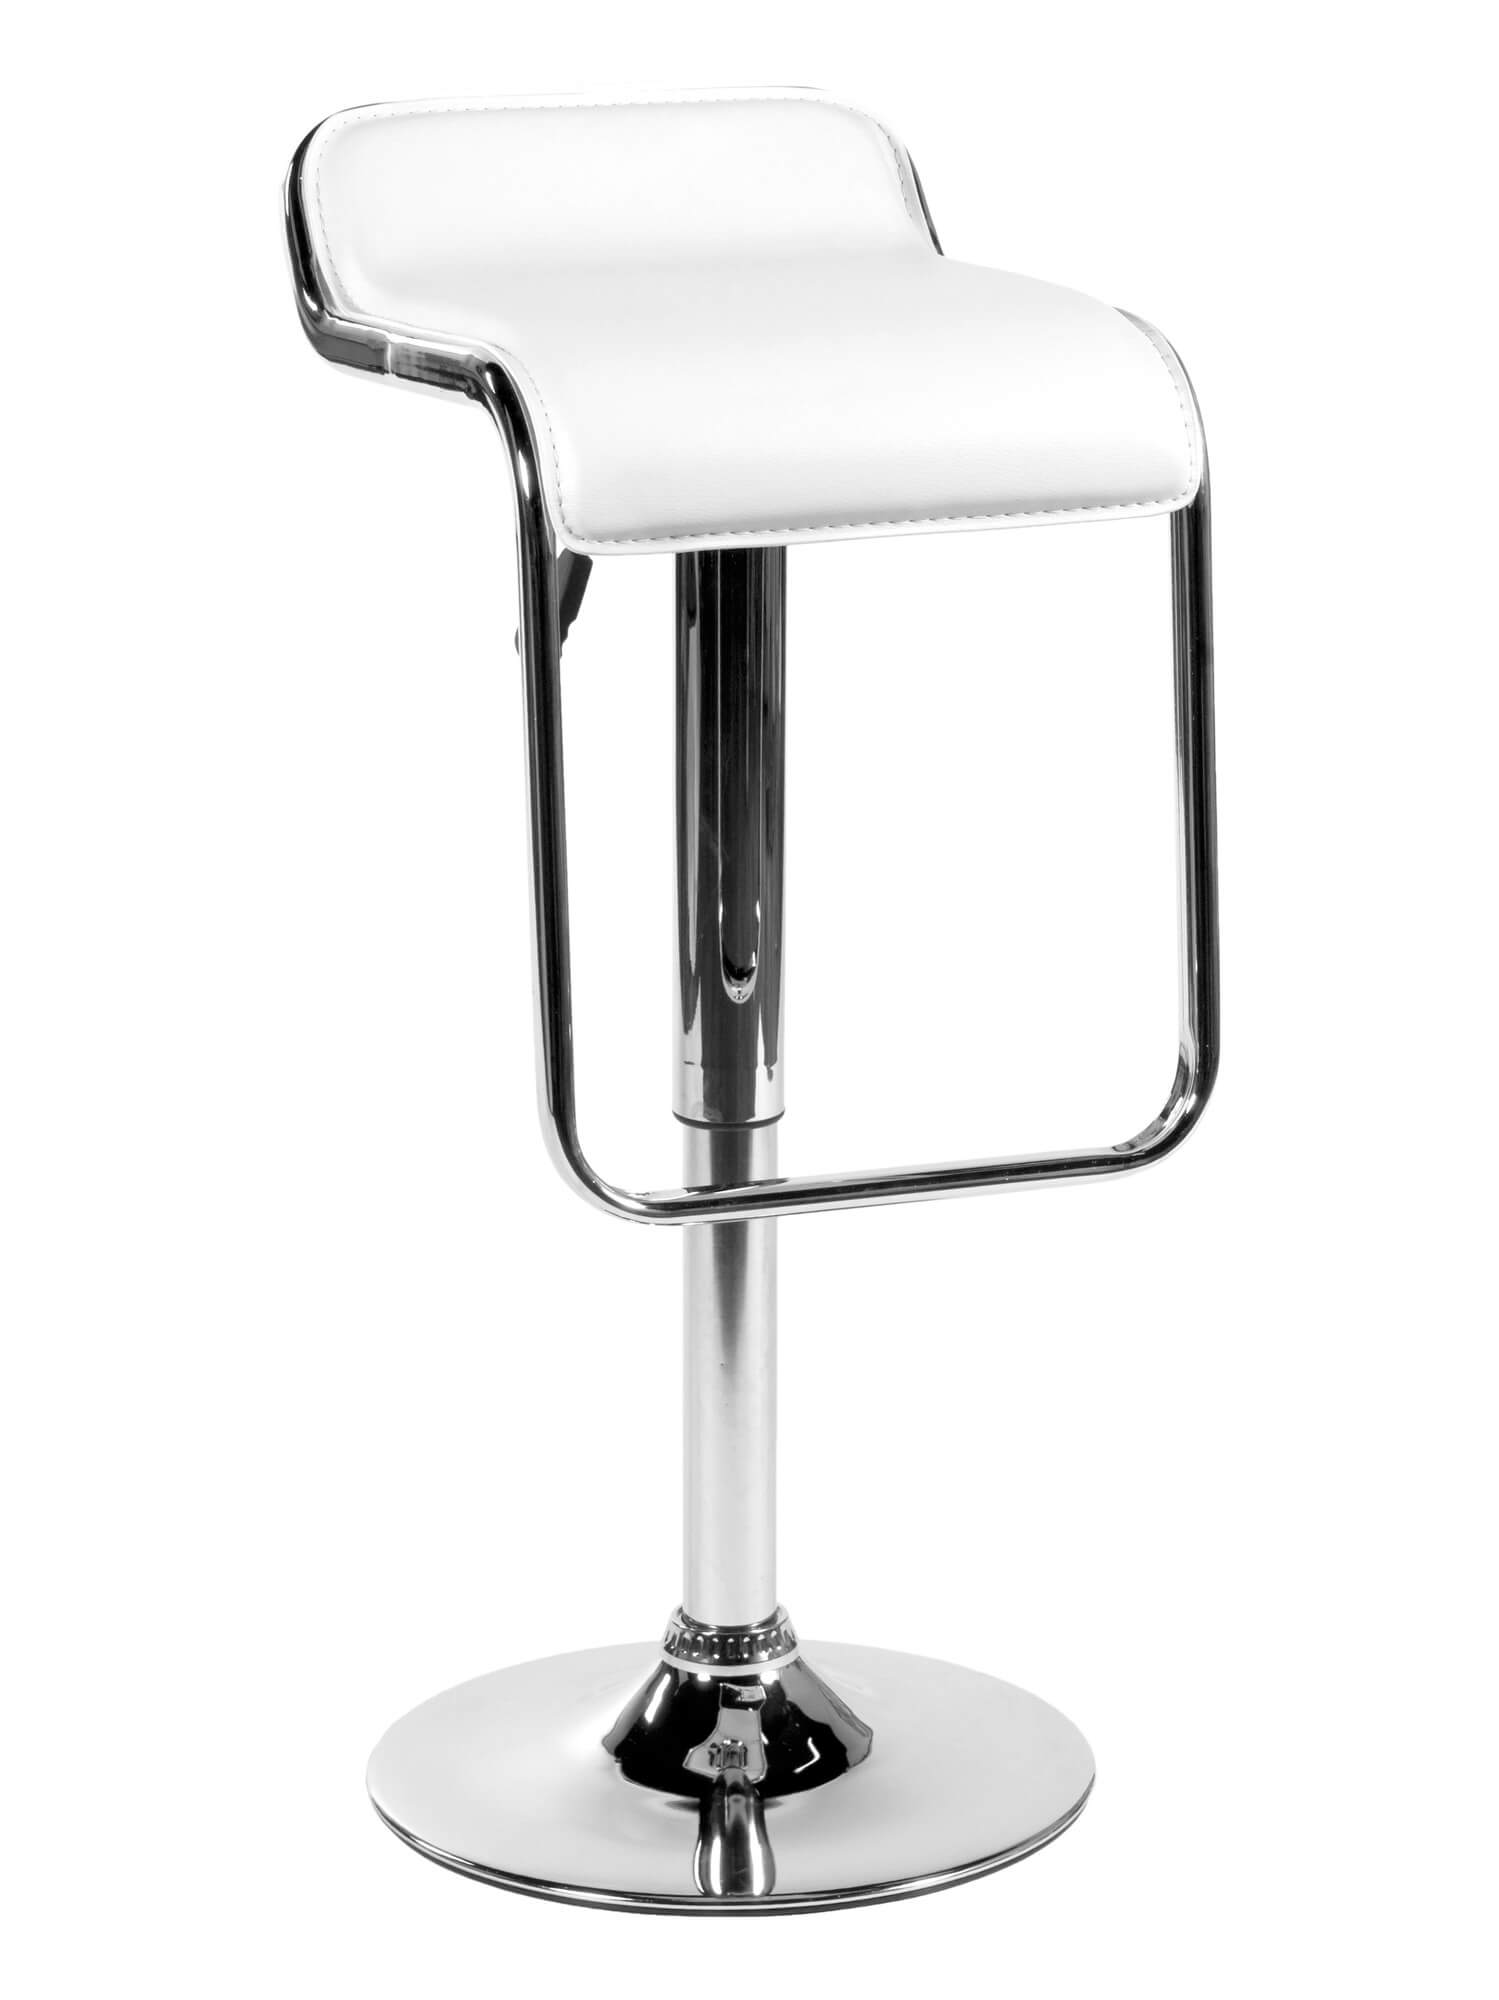 This modern stool design is unique in that the foot rest bar contours and forms a visible frame of the white leather upholstered low-back seat. It swivels and adjusts up and down.